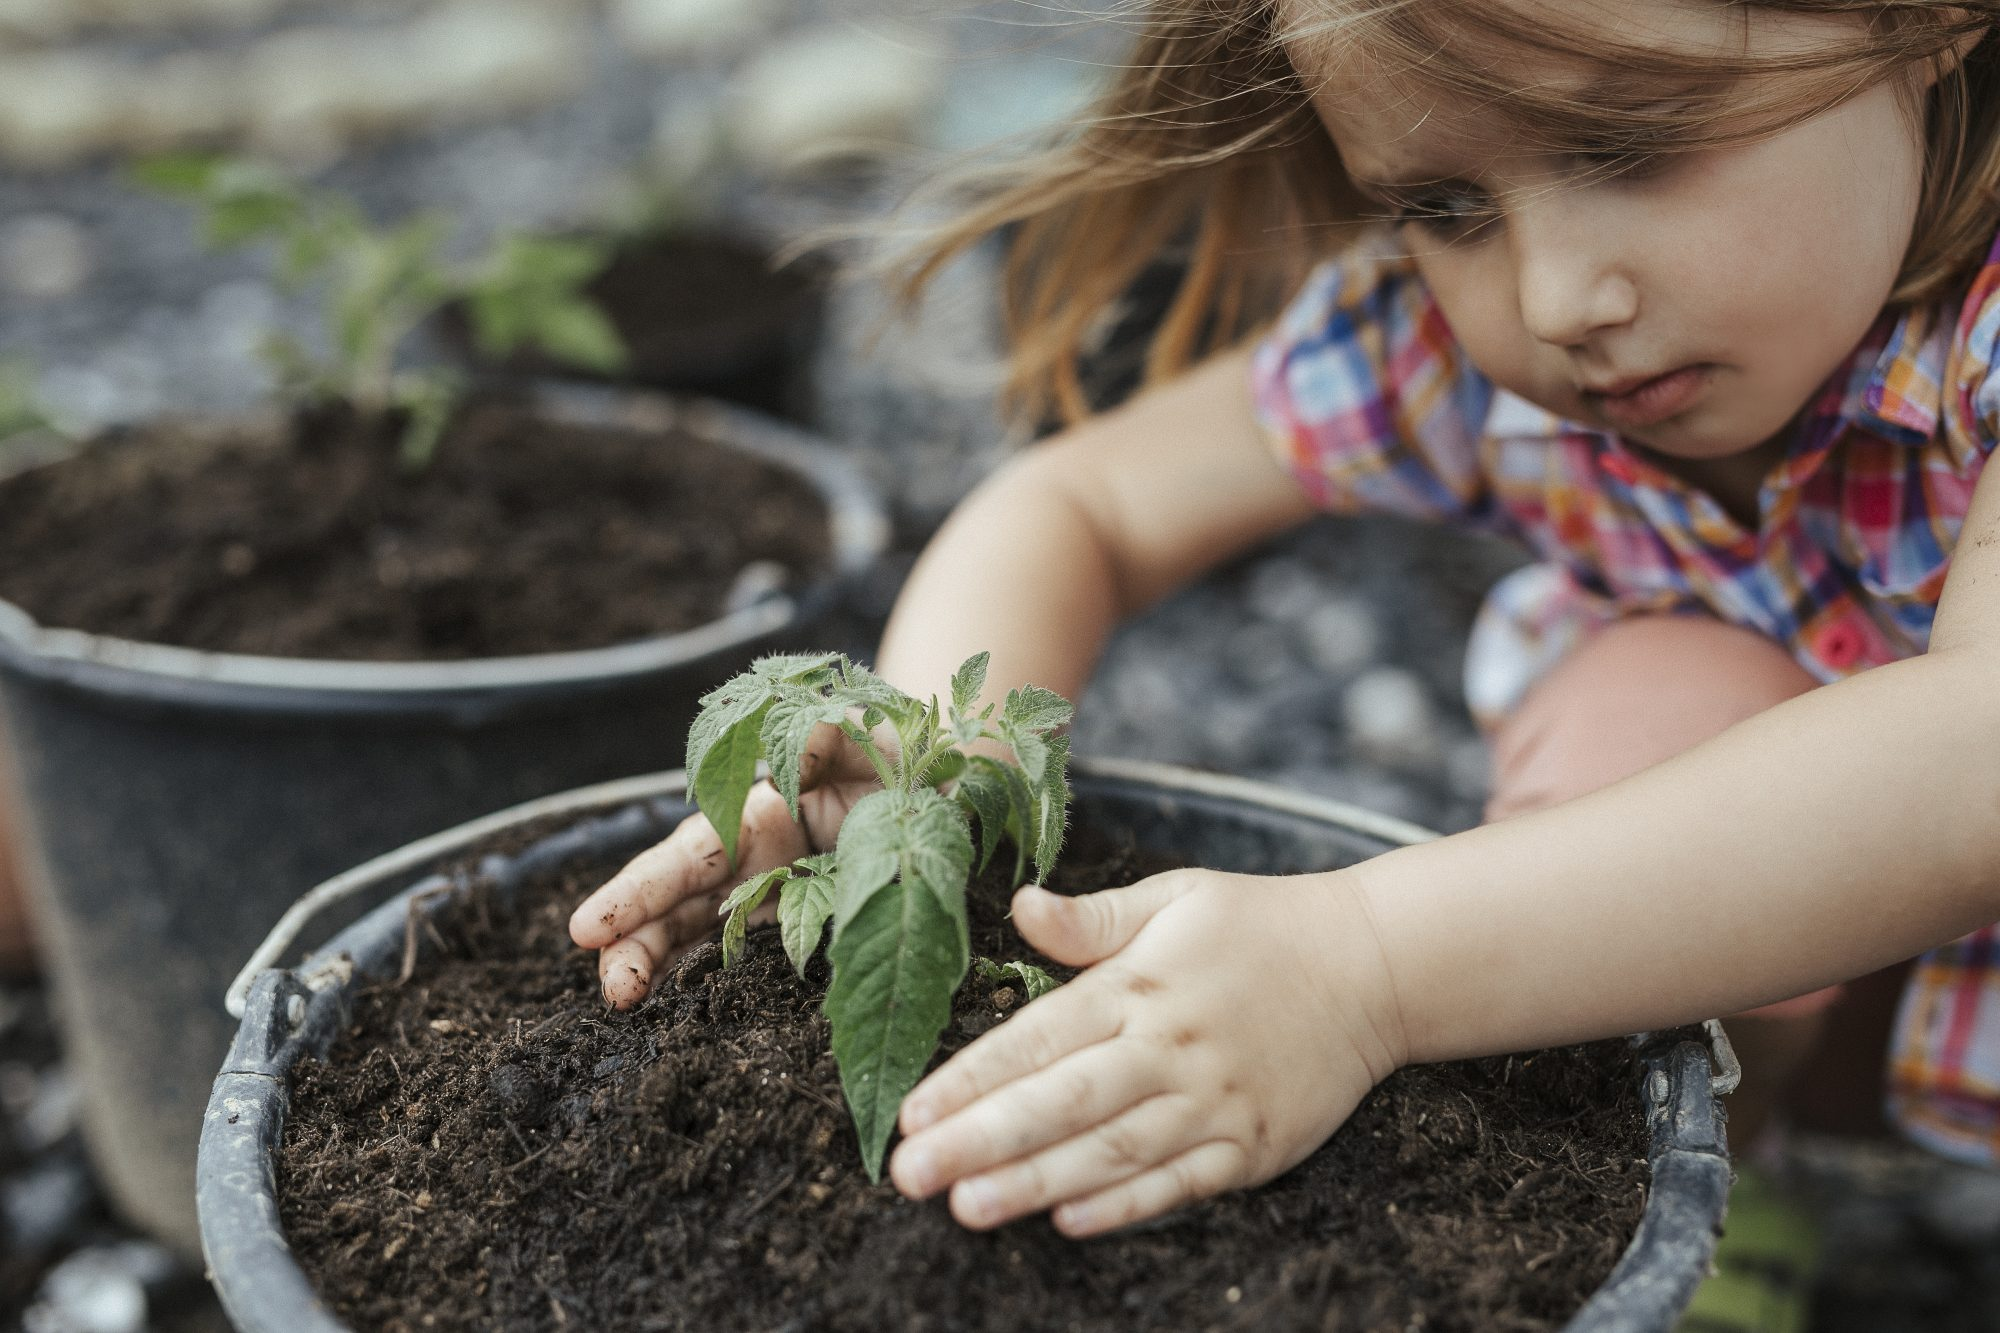 Child planting tomatoes Getty 4/20/20